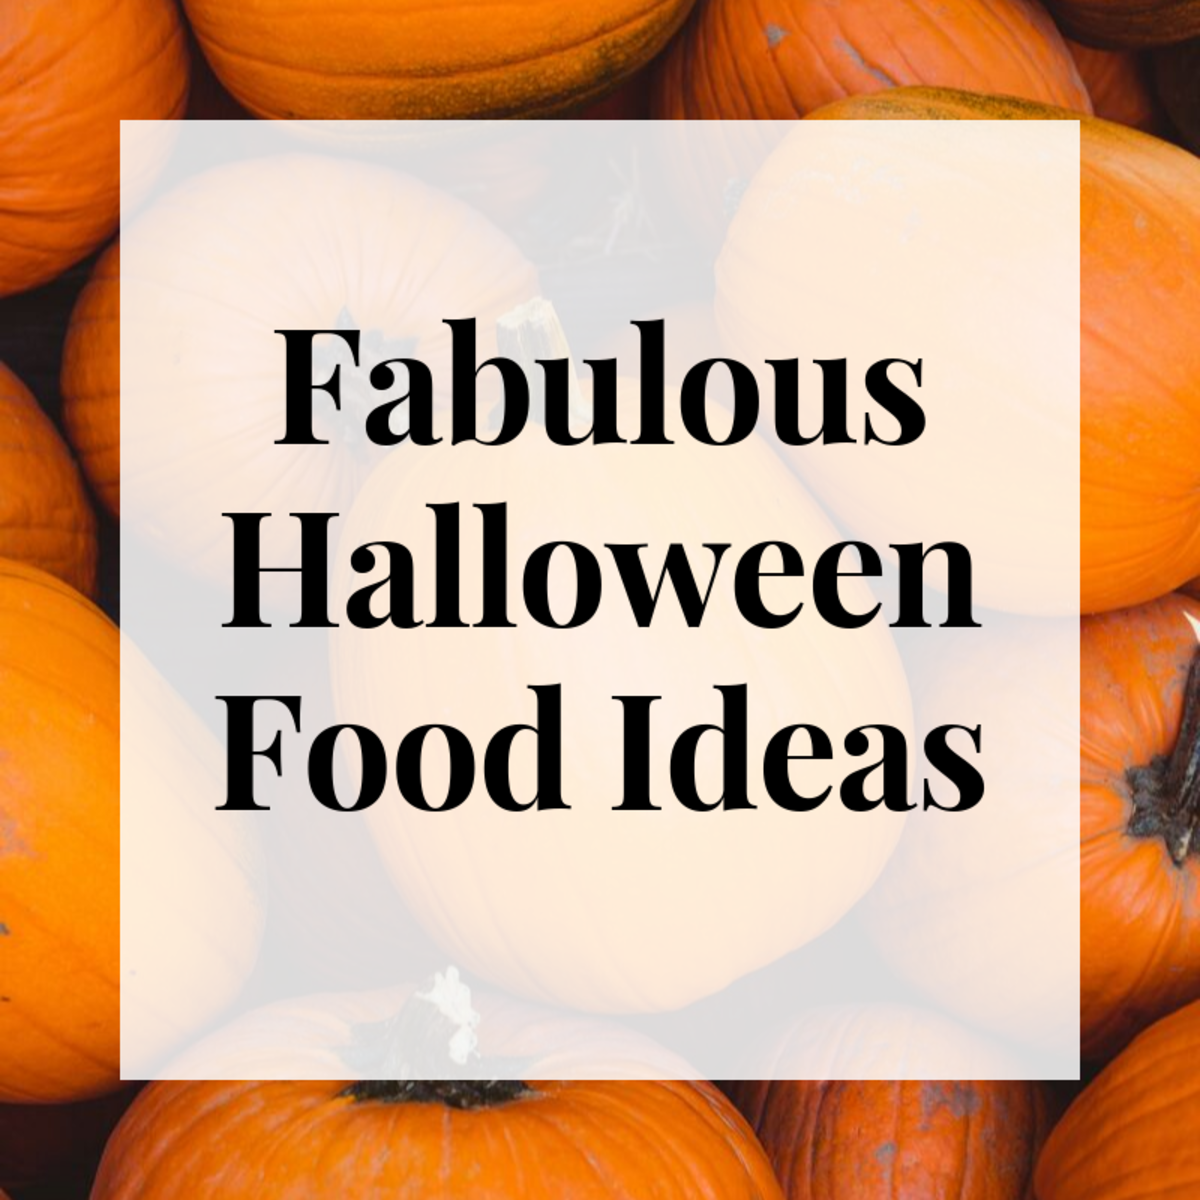 These fabulous Halloween food ideas are fun and delicious!